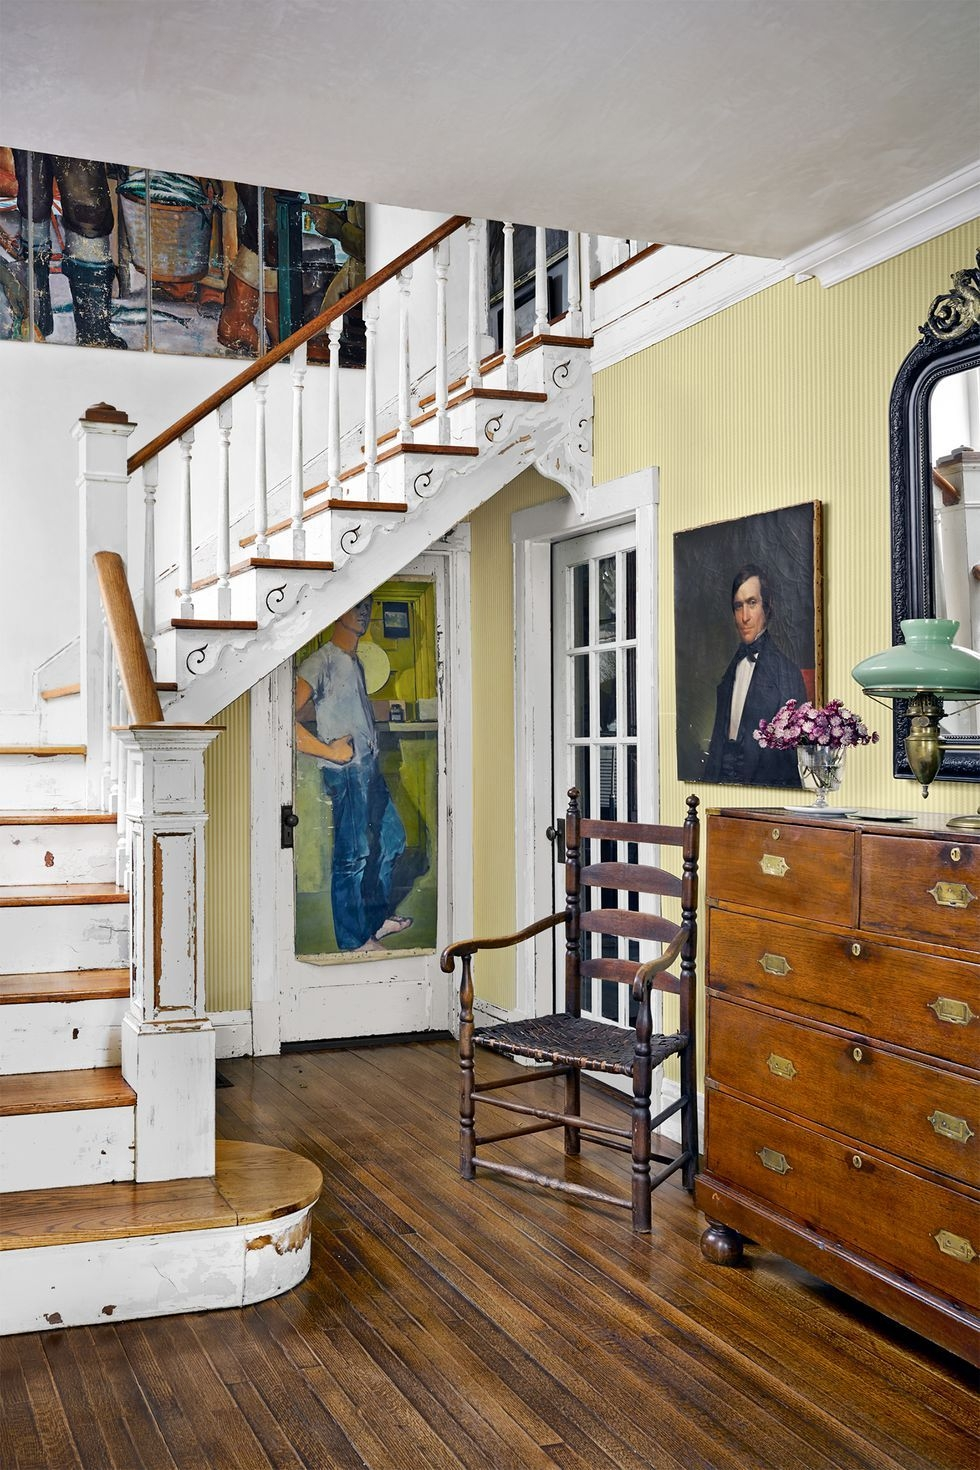 55 Best Staircase Ideas Top Ways To Decorate A Stairway | Designs Of Stairs Inside Small House | Stone Tiles | Decorating Ideas | Stair Treads | Space | Staircase Makeover